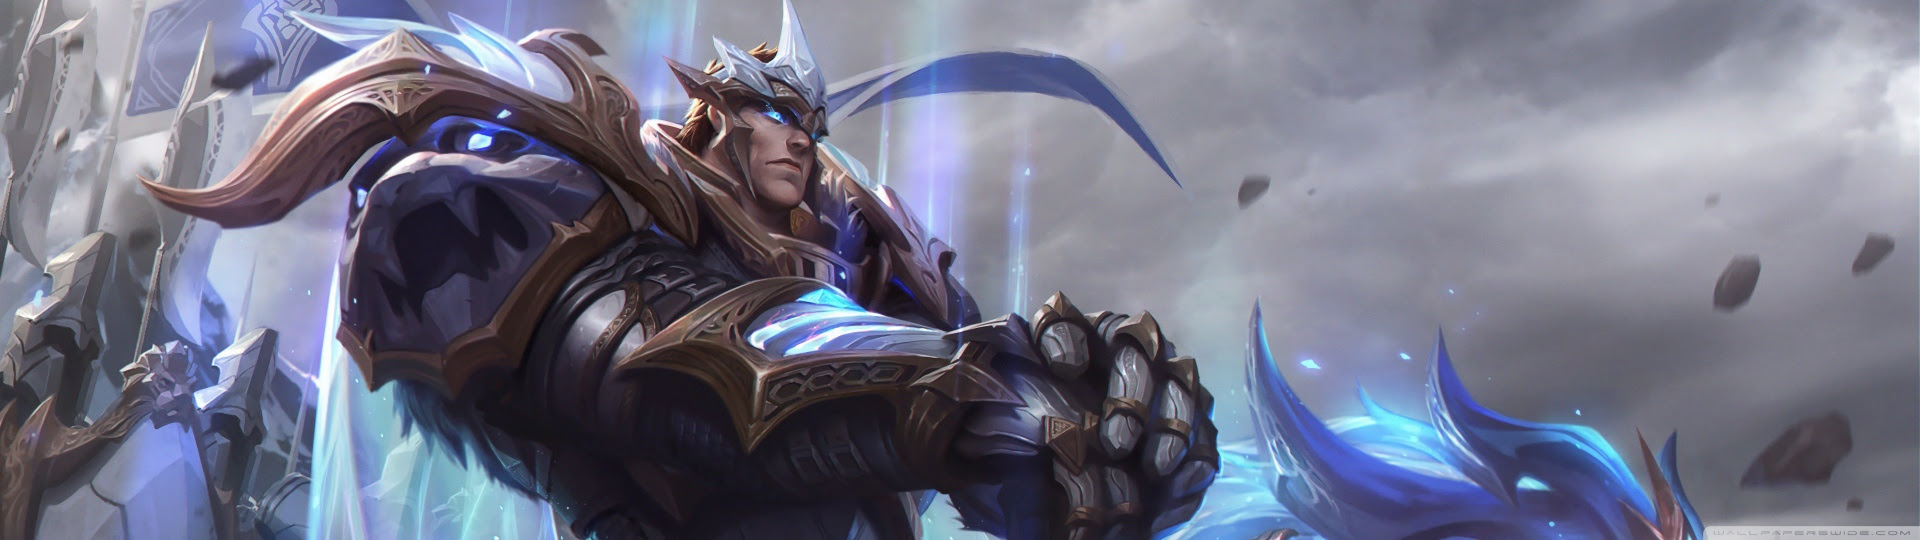 God King Garen Lol Splash Art League Of Legends Ultra Hd Desktop